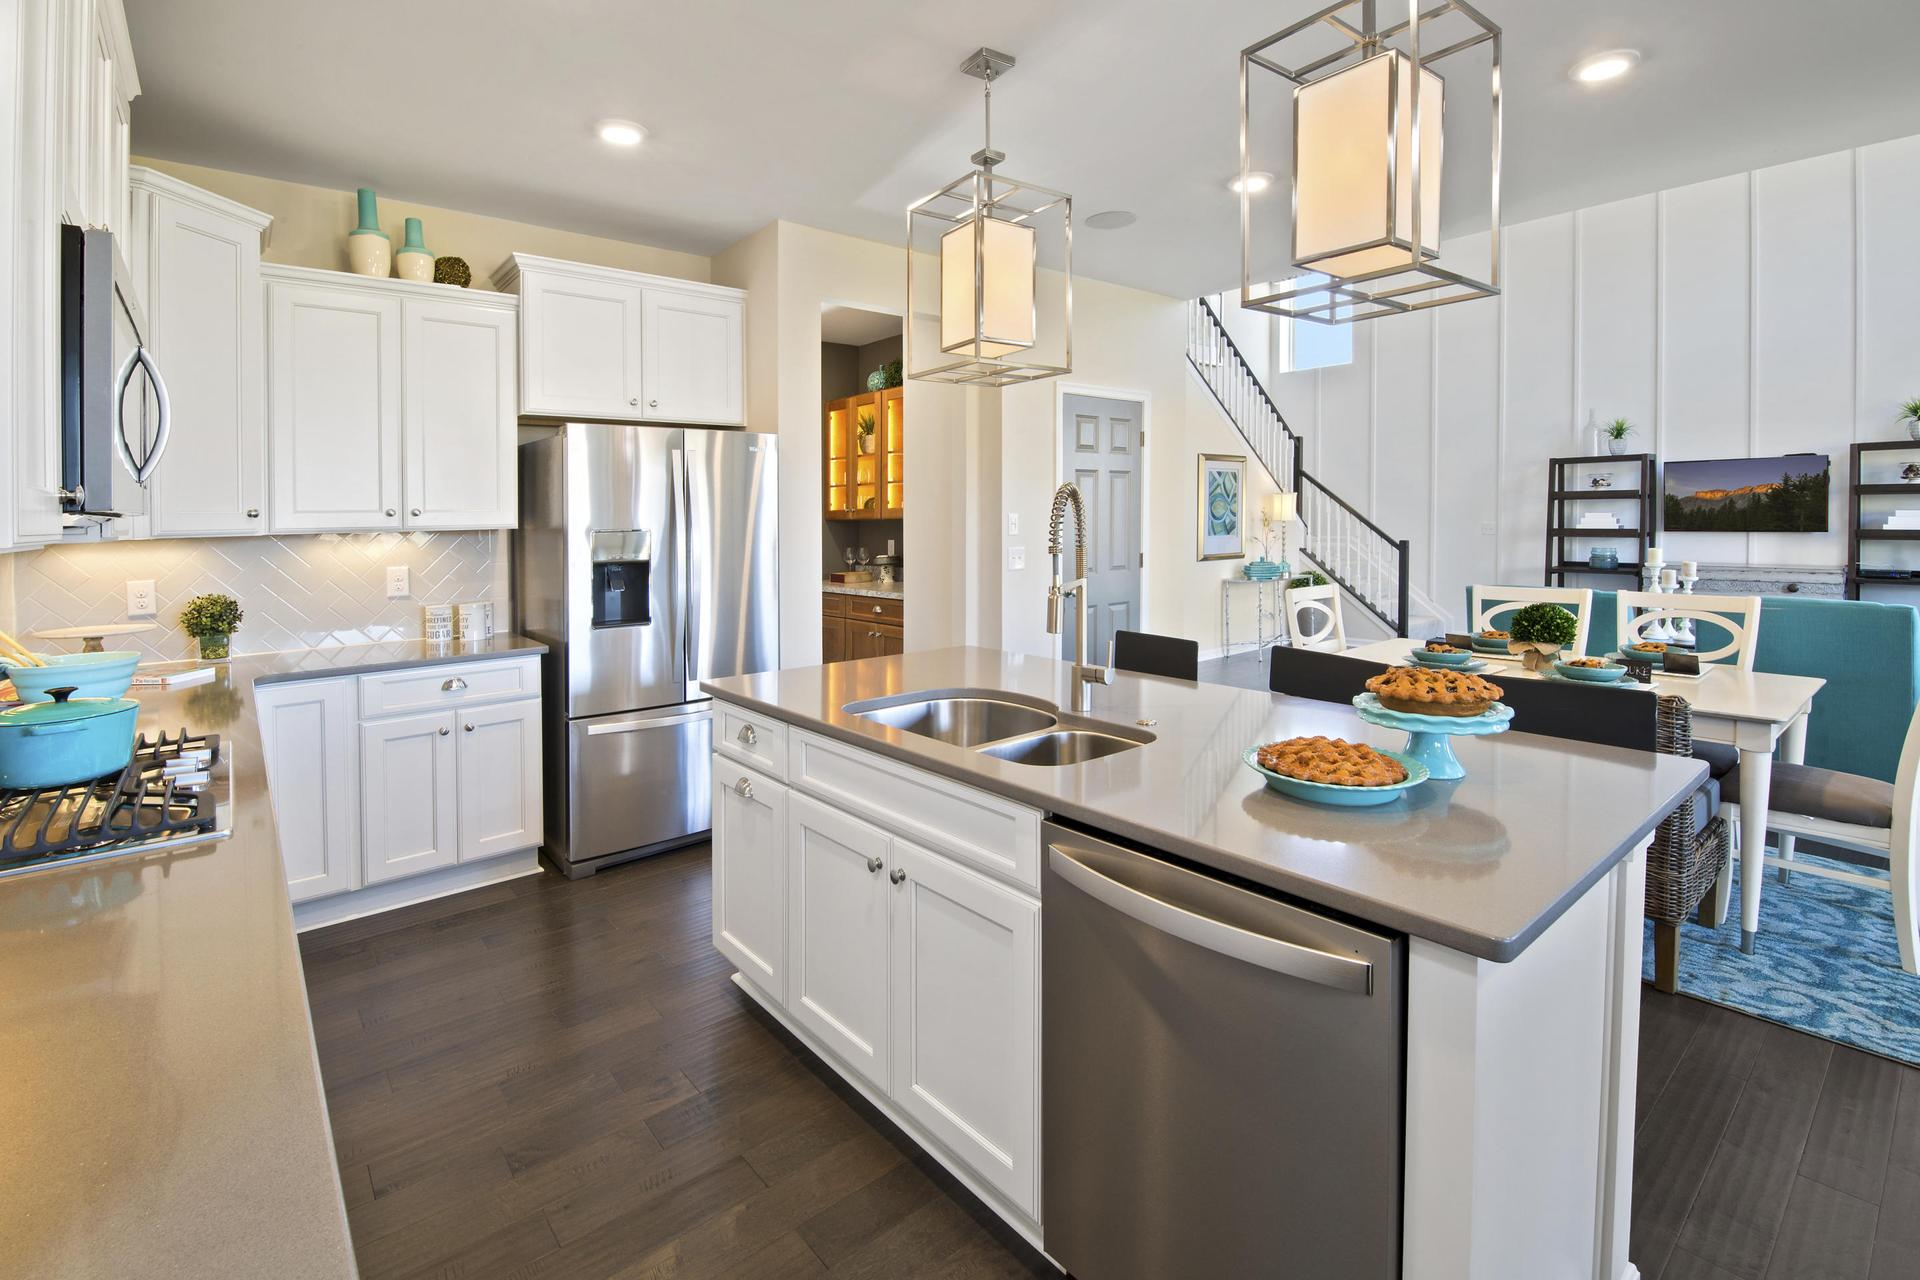 Ambleside Meadows in Mason, OH, New Homes & Floor Plans by Drees Homes